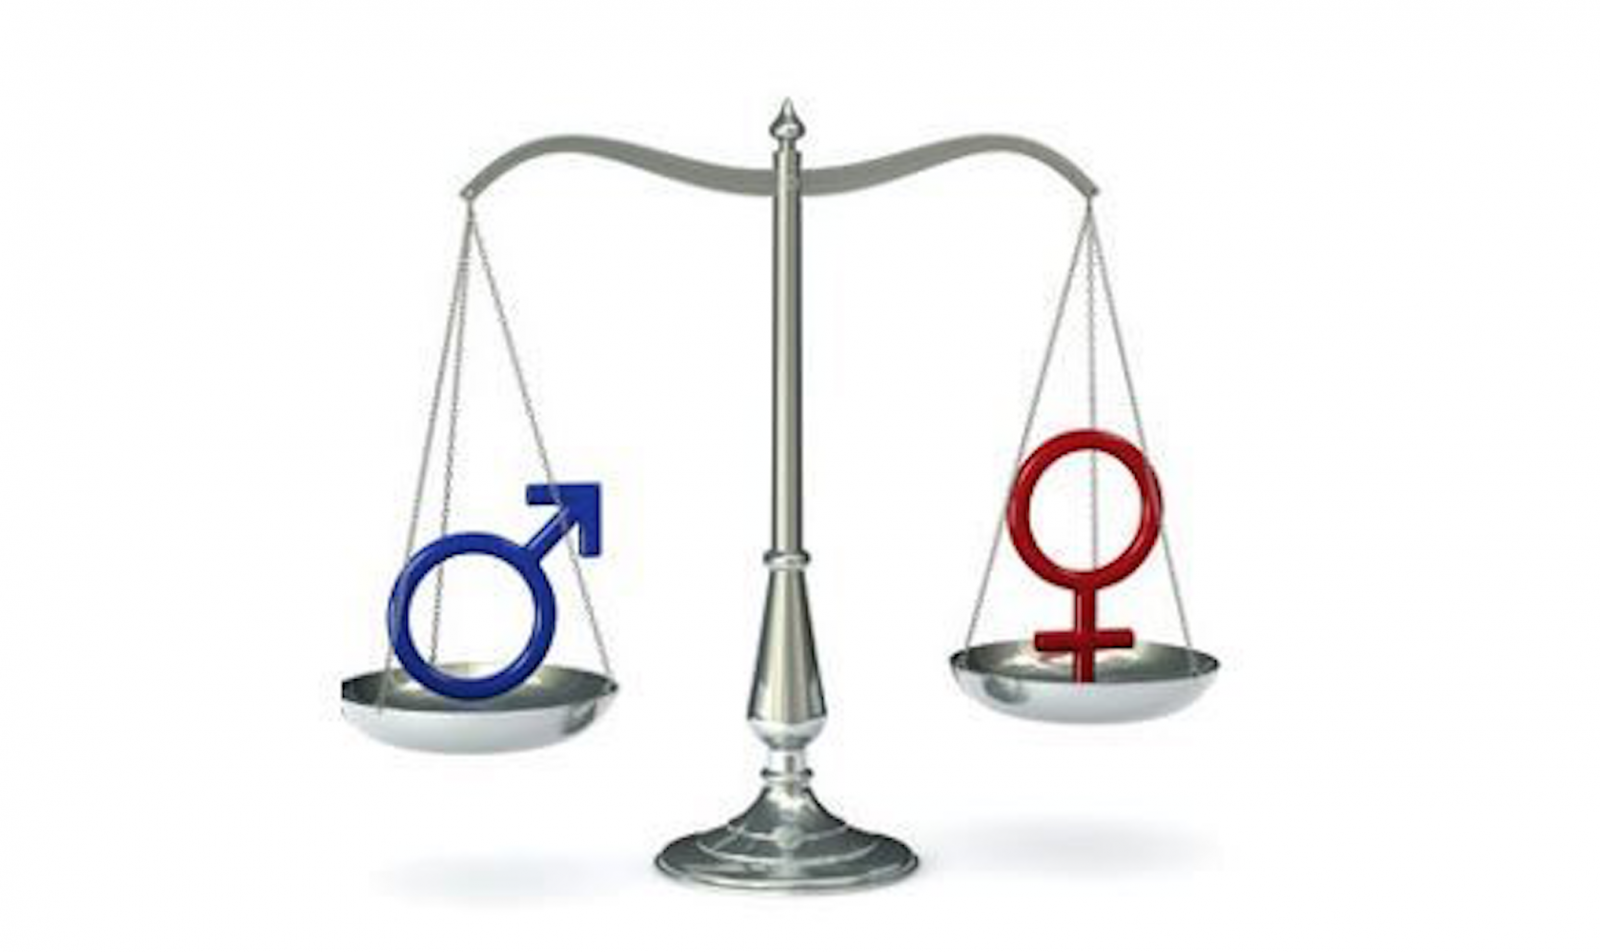 Transgender rights: How did we get here? Part 1 Equality Law